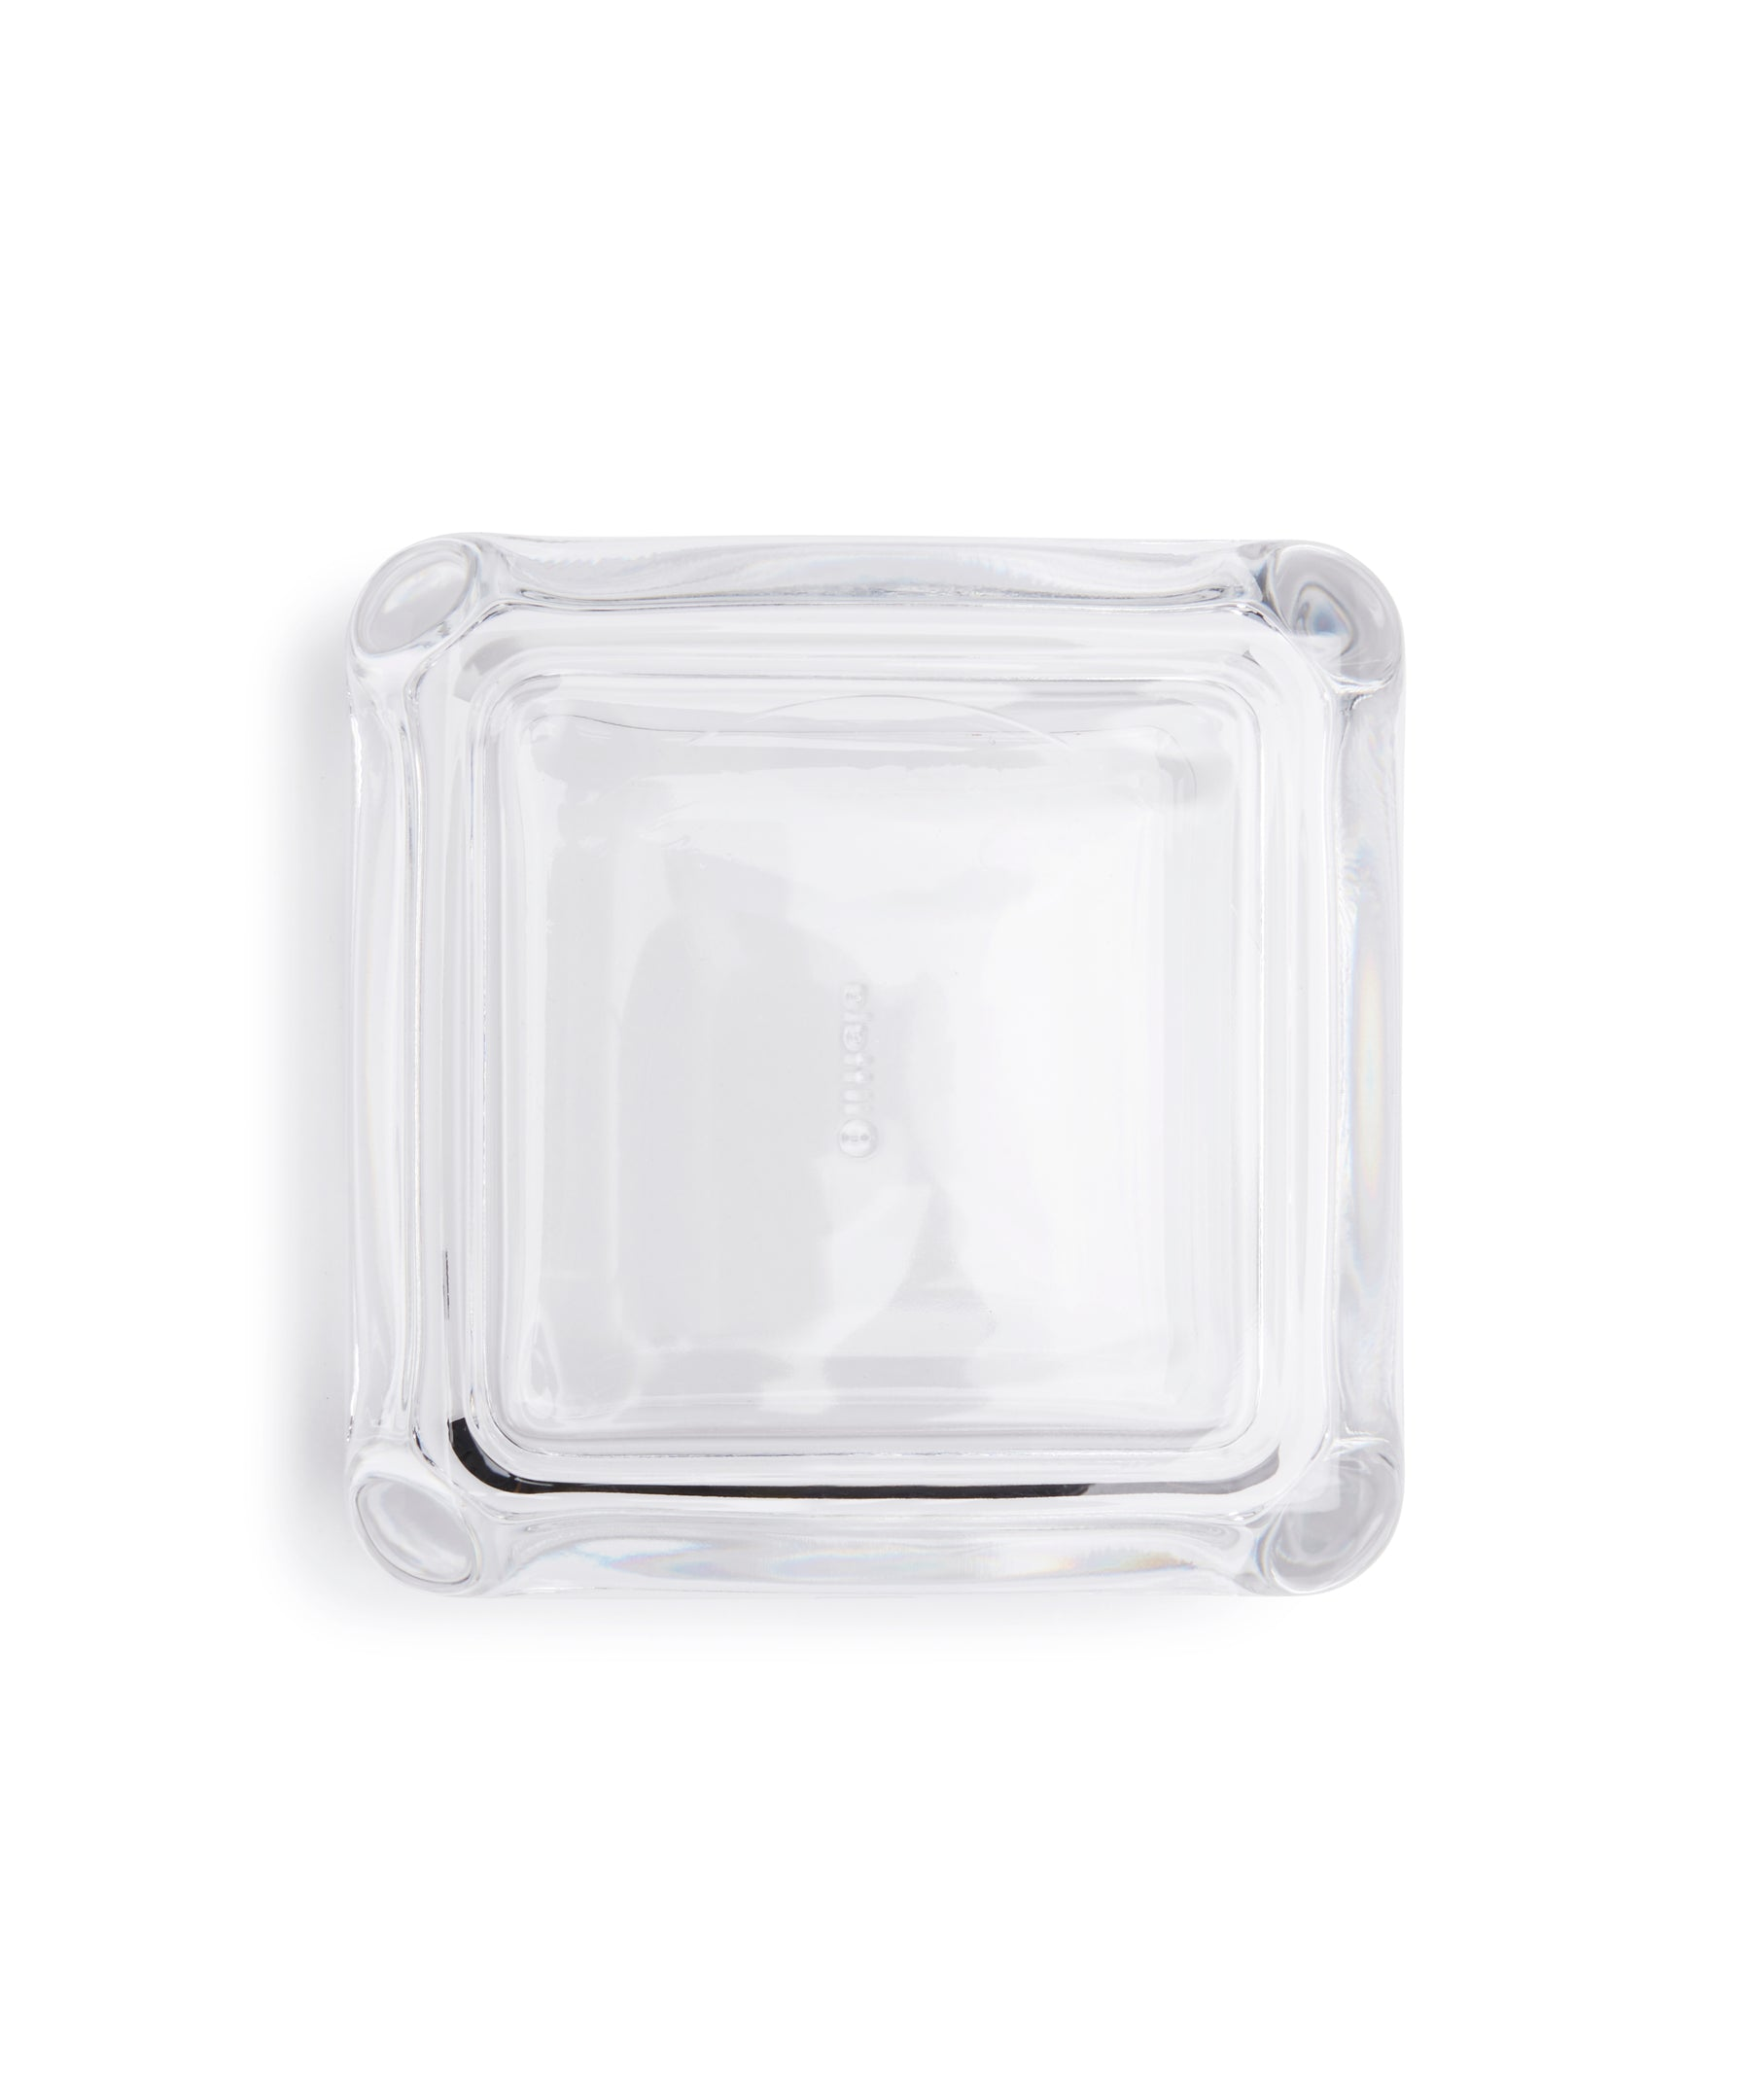 Vitriini Box (Clear) by Iittala